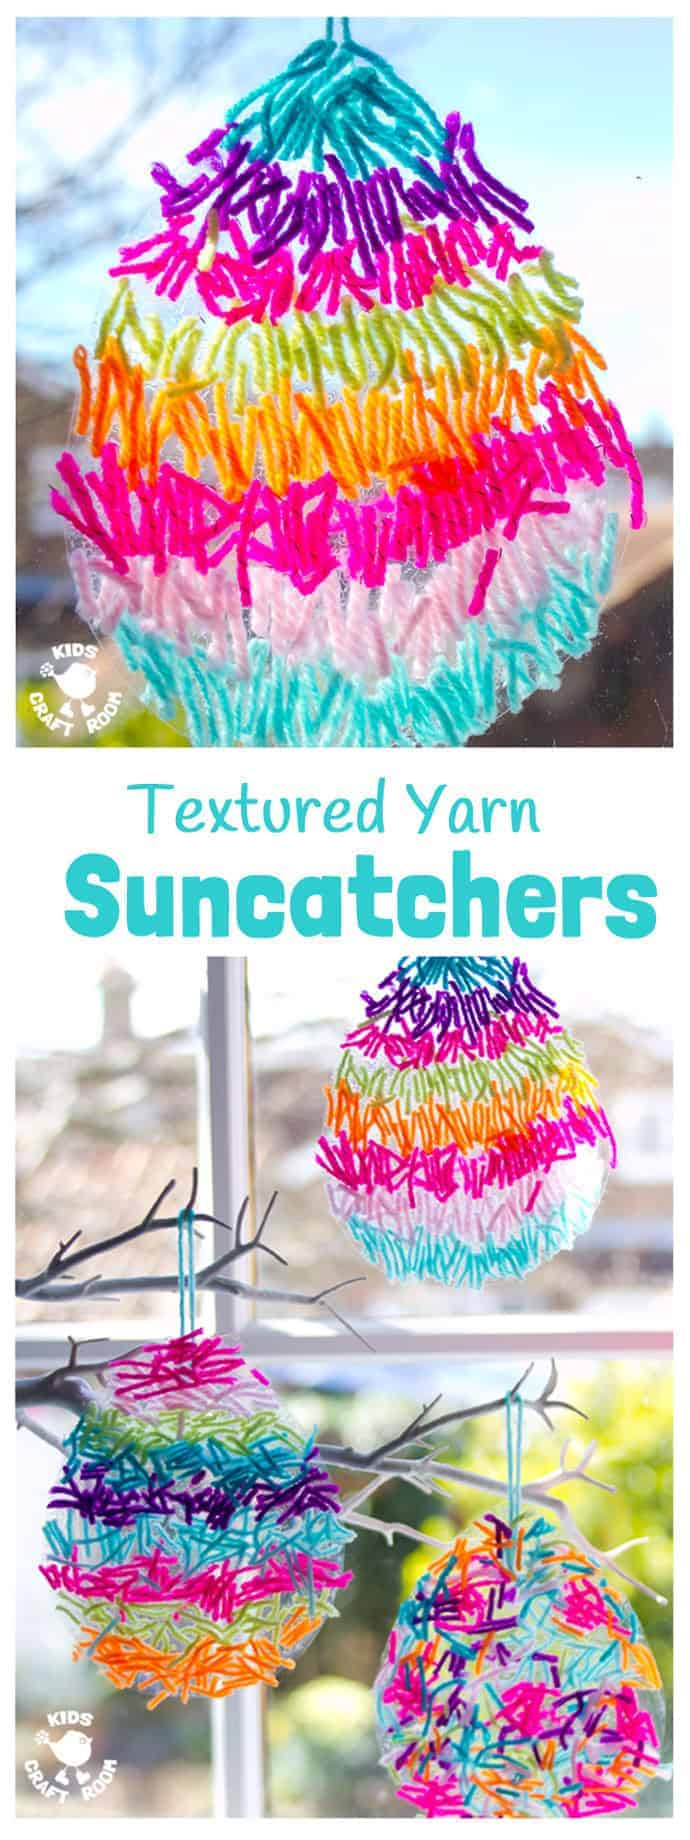 This textured yarn EASTER SUNCATCHER CRAFT is a gorgeous Easter craft or Spring craft for kids of all ages. A simple yarn craft made from scraps, these homemade Easter Egg Suncatchers look stunning in windows or hanging on an Easter tree. These are DIY Easter decorations you'll want to display year after year. #easter #eastercrafts #eastereggs #suncatchers #kidscrafts #craftsforkids #kidscraftroom #yarncrafts #suncatcher #eggcrafts #springcrafts